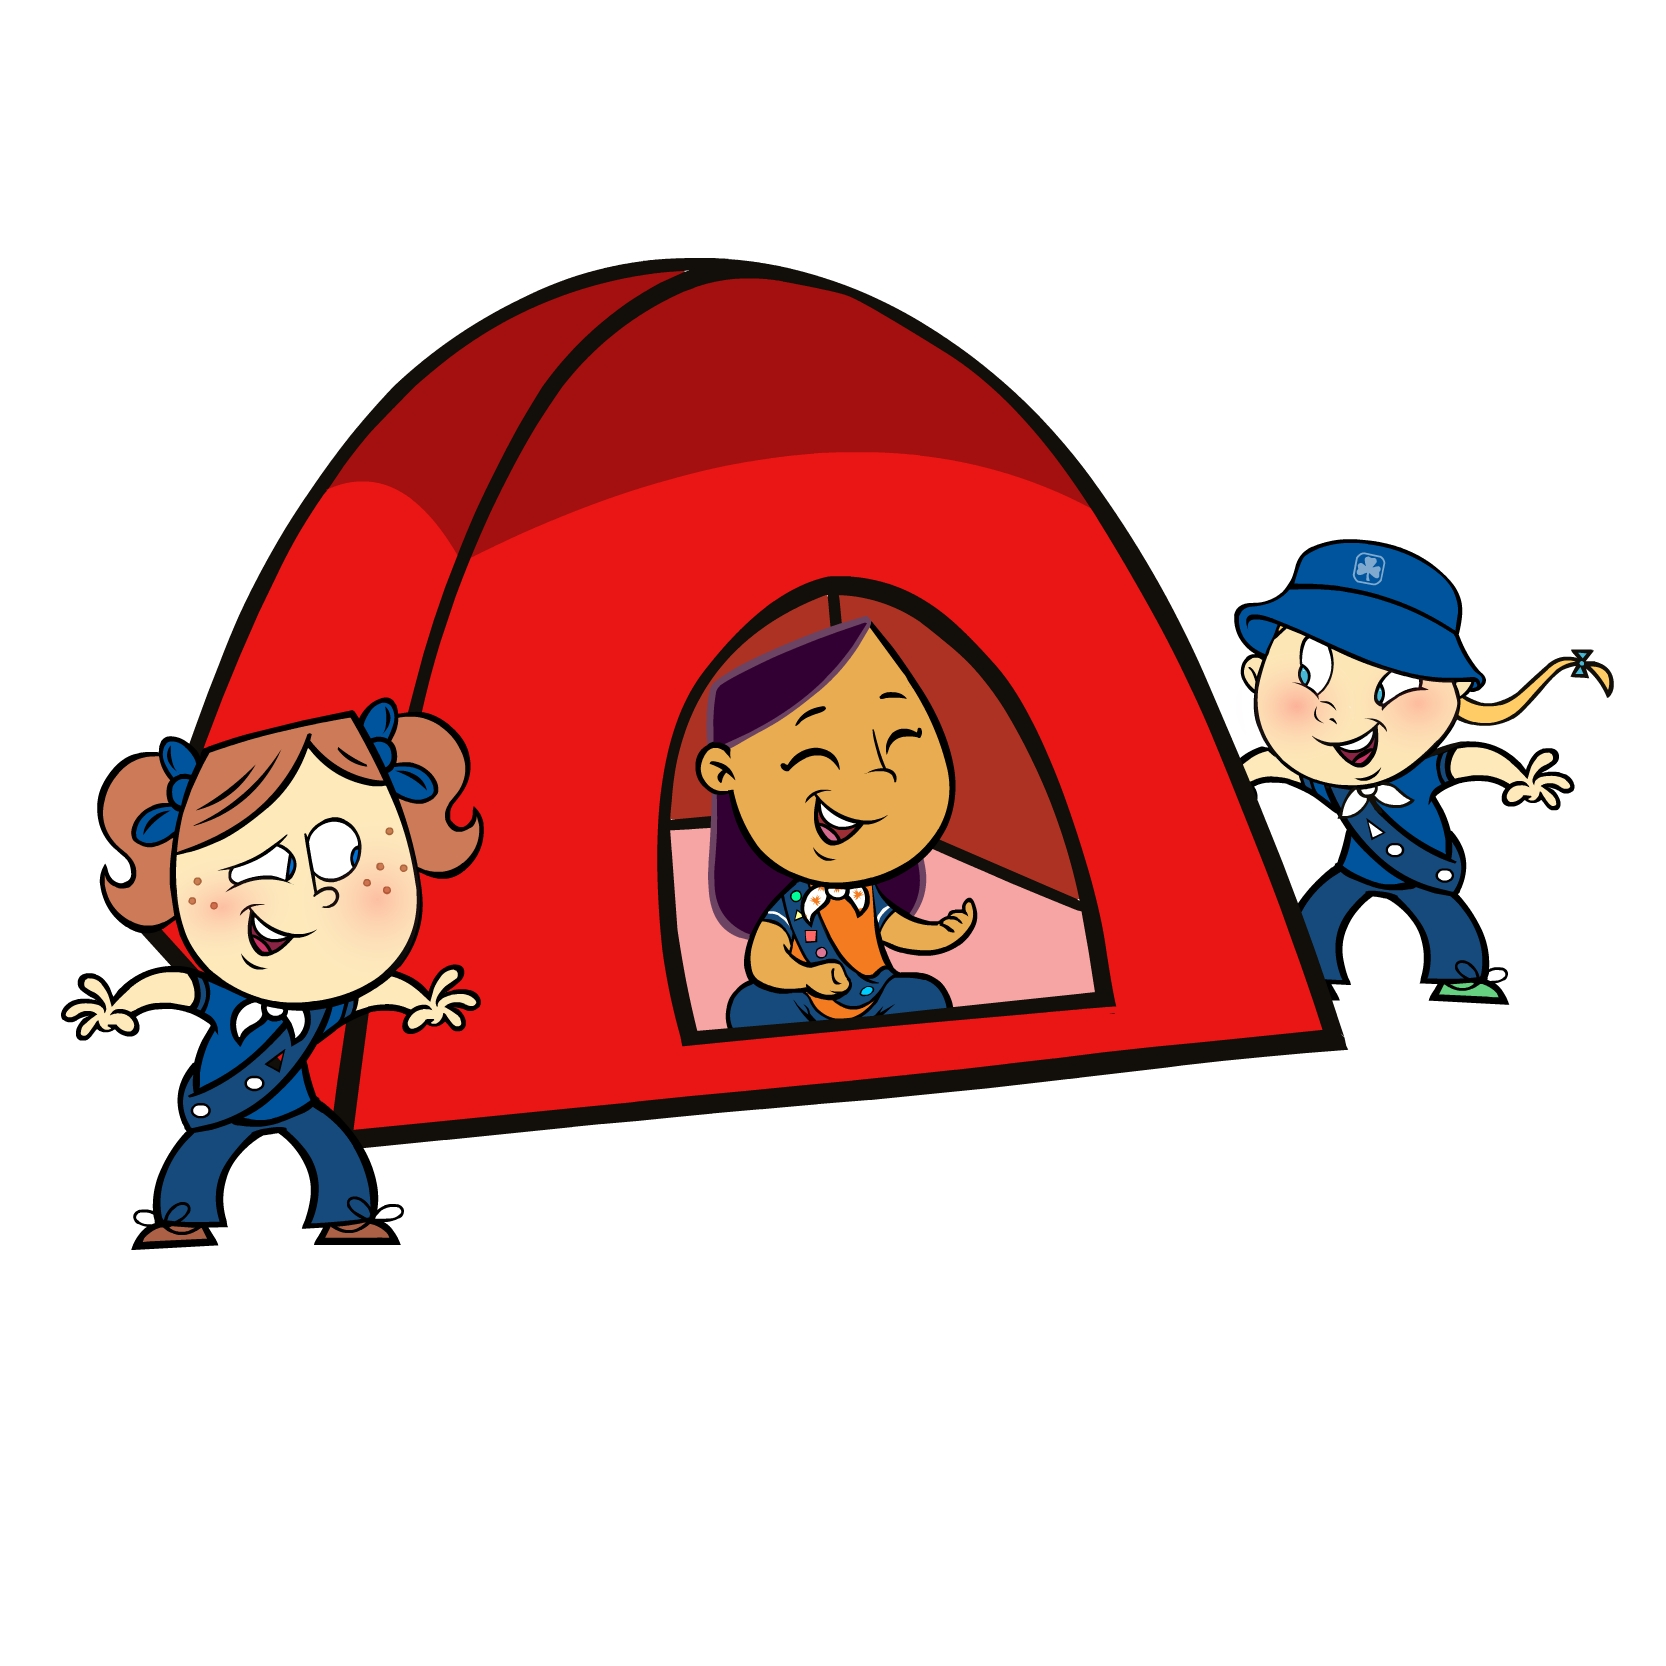 Camping sleepover clipart